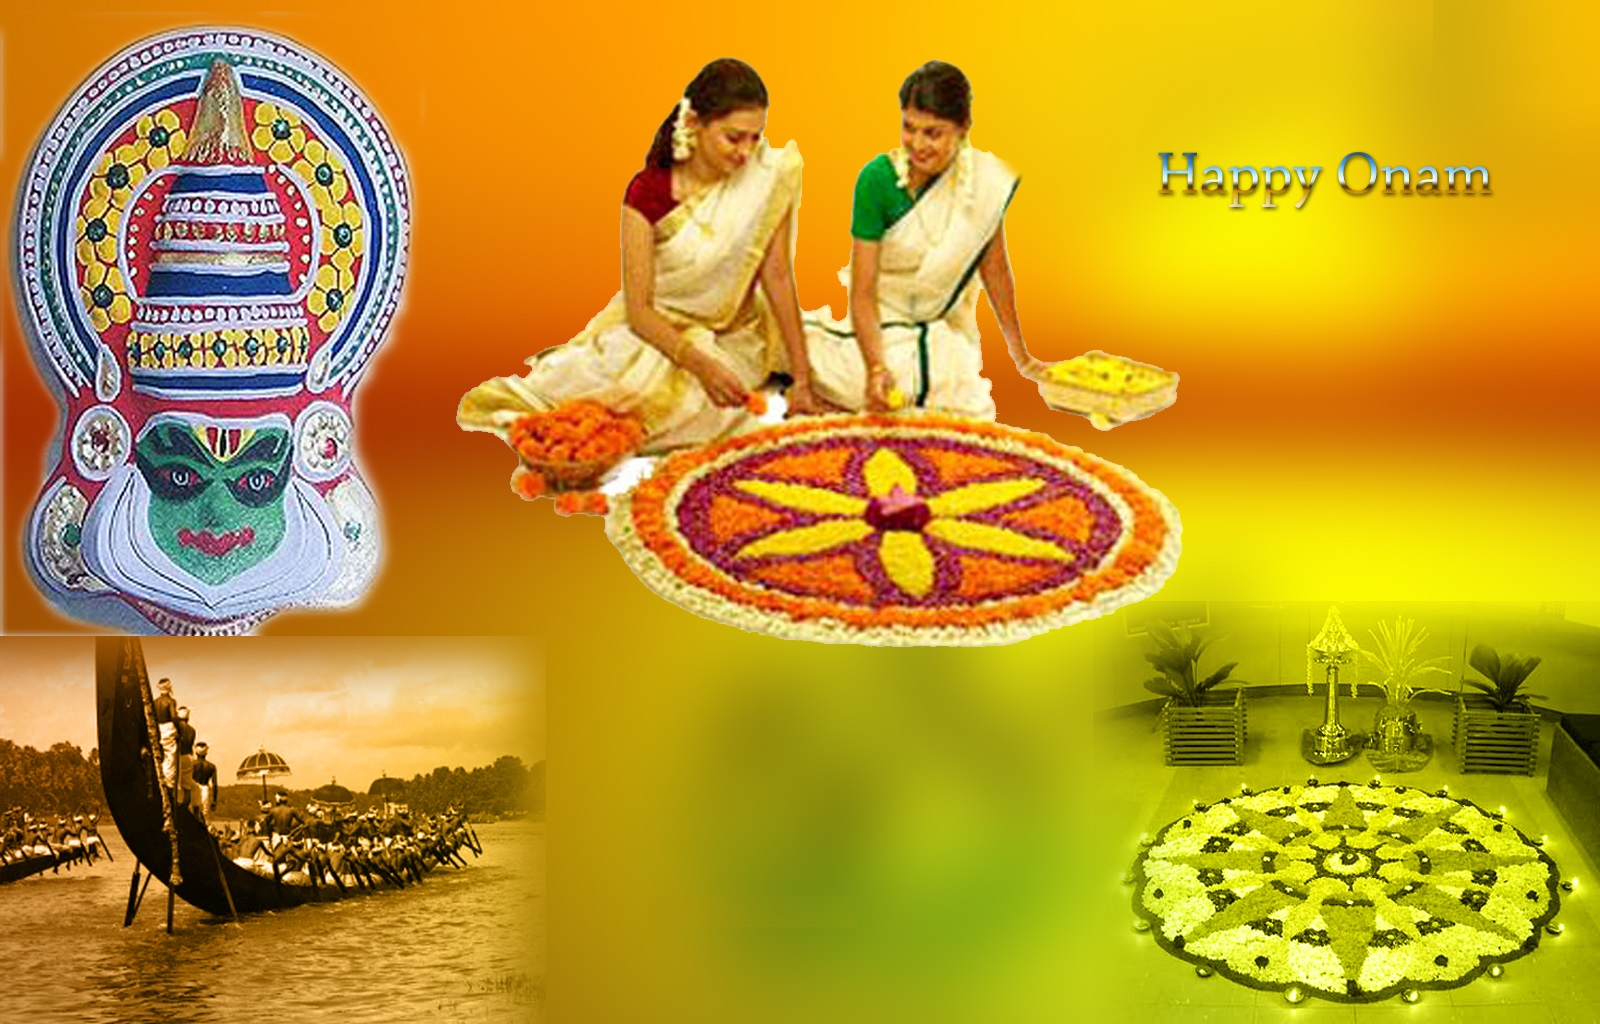 Khushi For Life Free Onam Cards Best Greetings Scraps Images